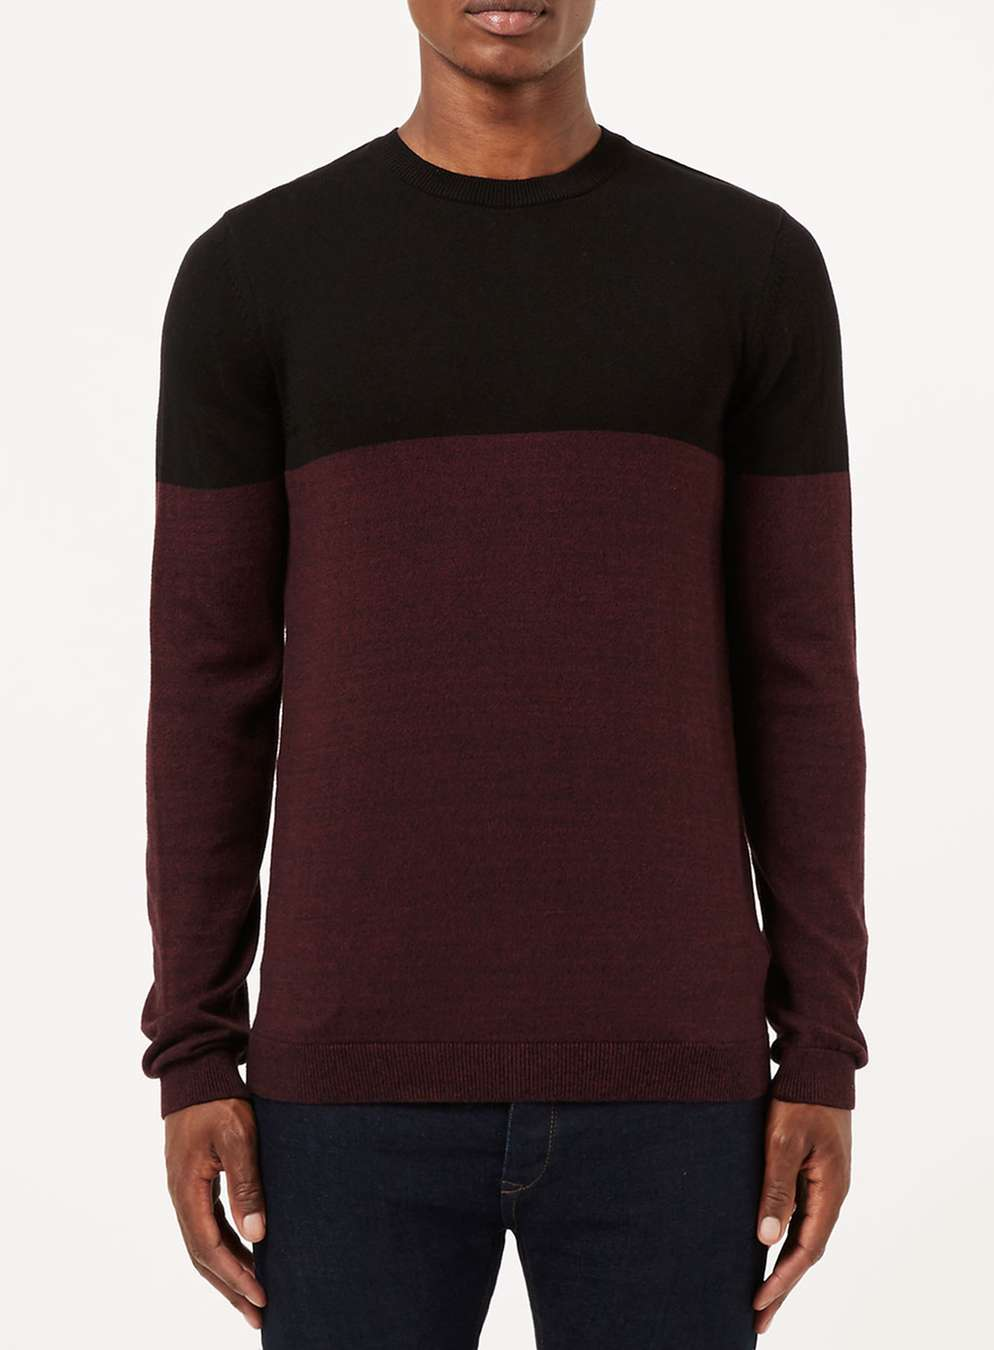 Topman Black And Burgundy Colour Block Jumper